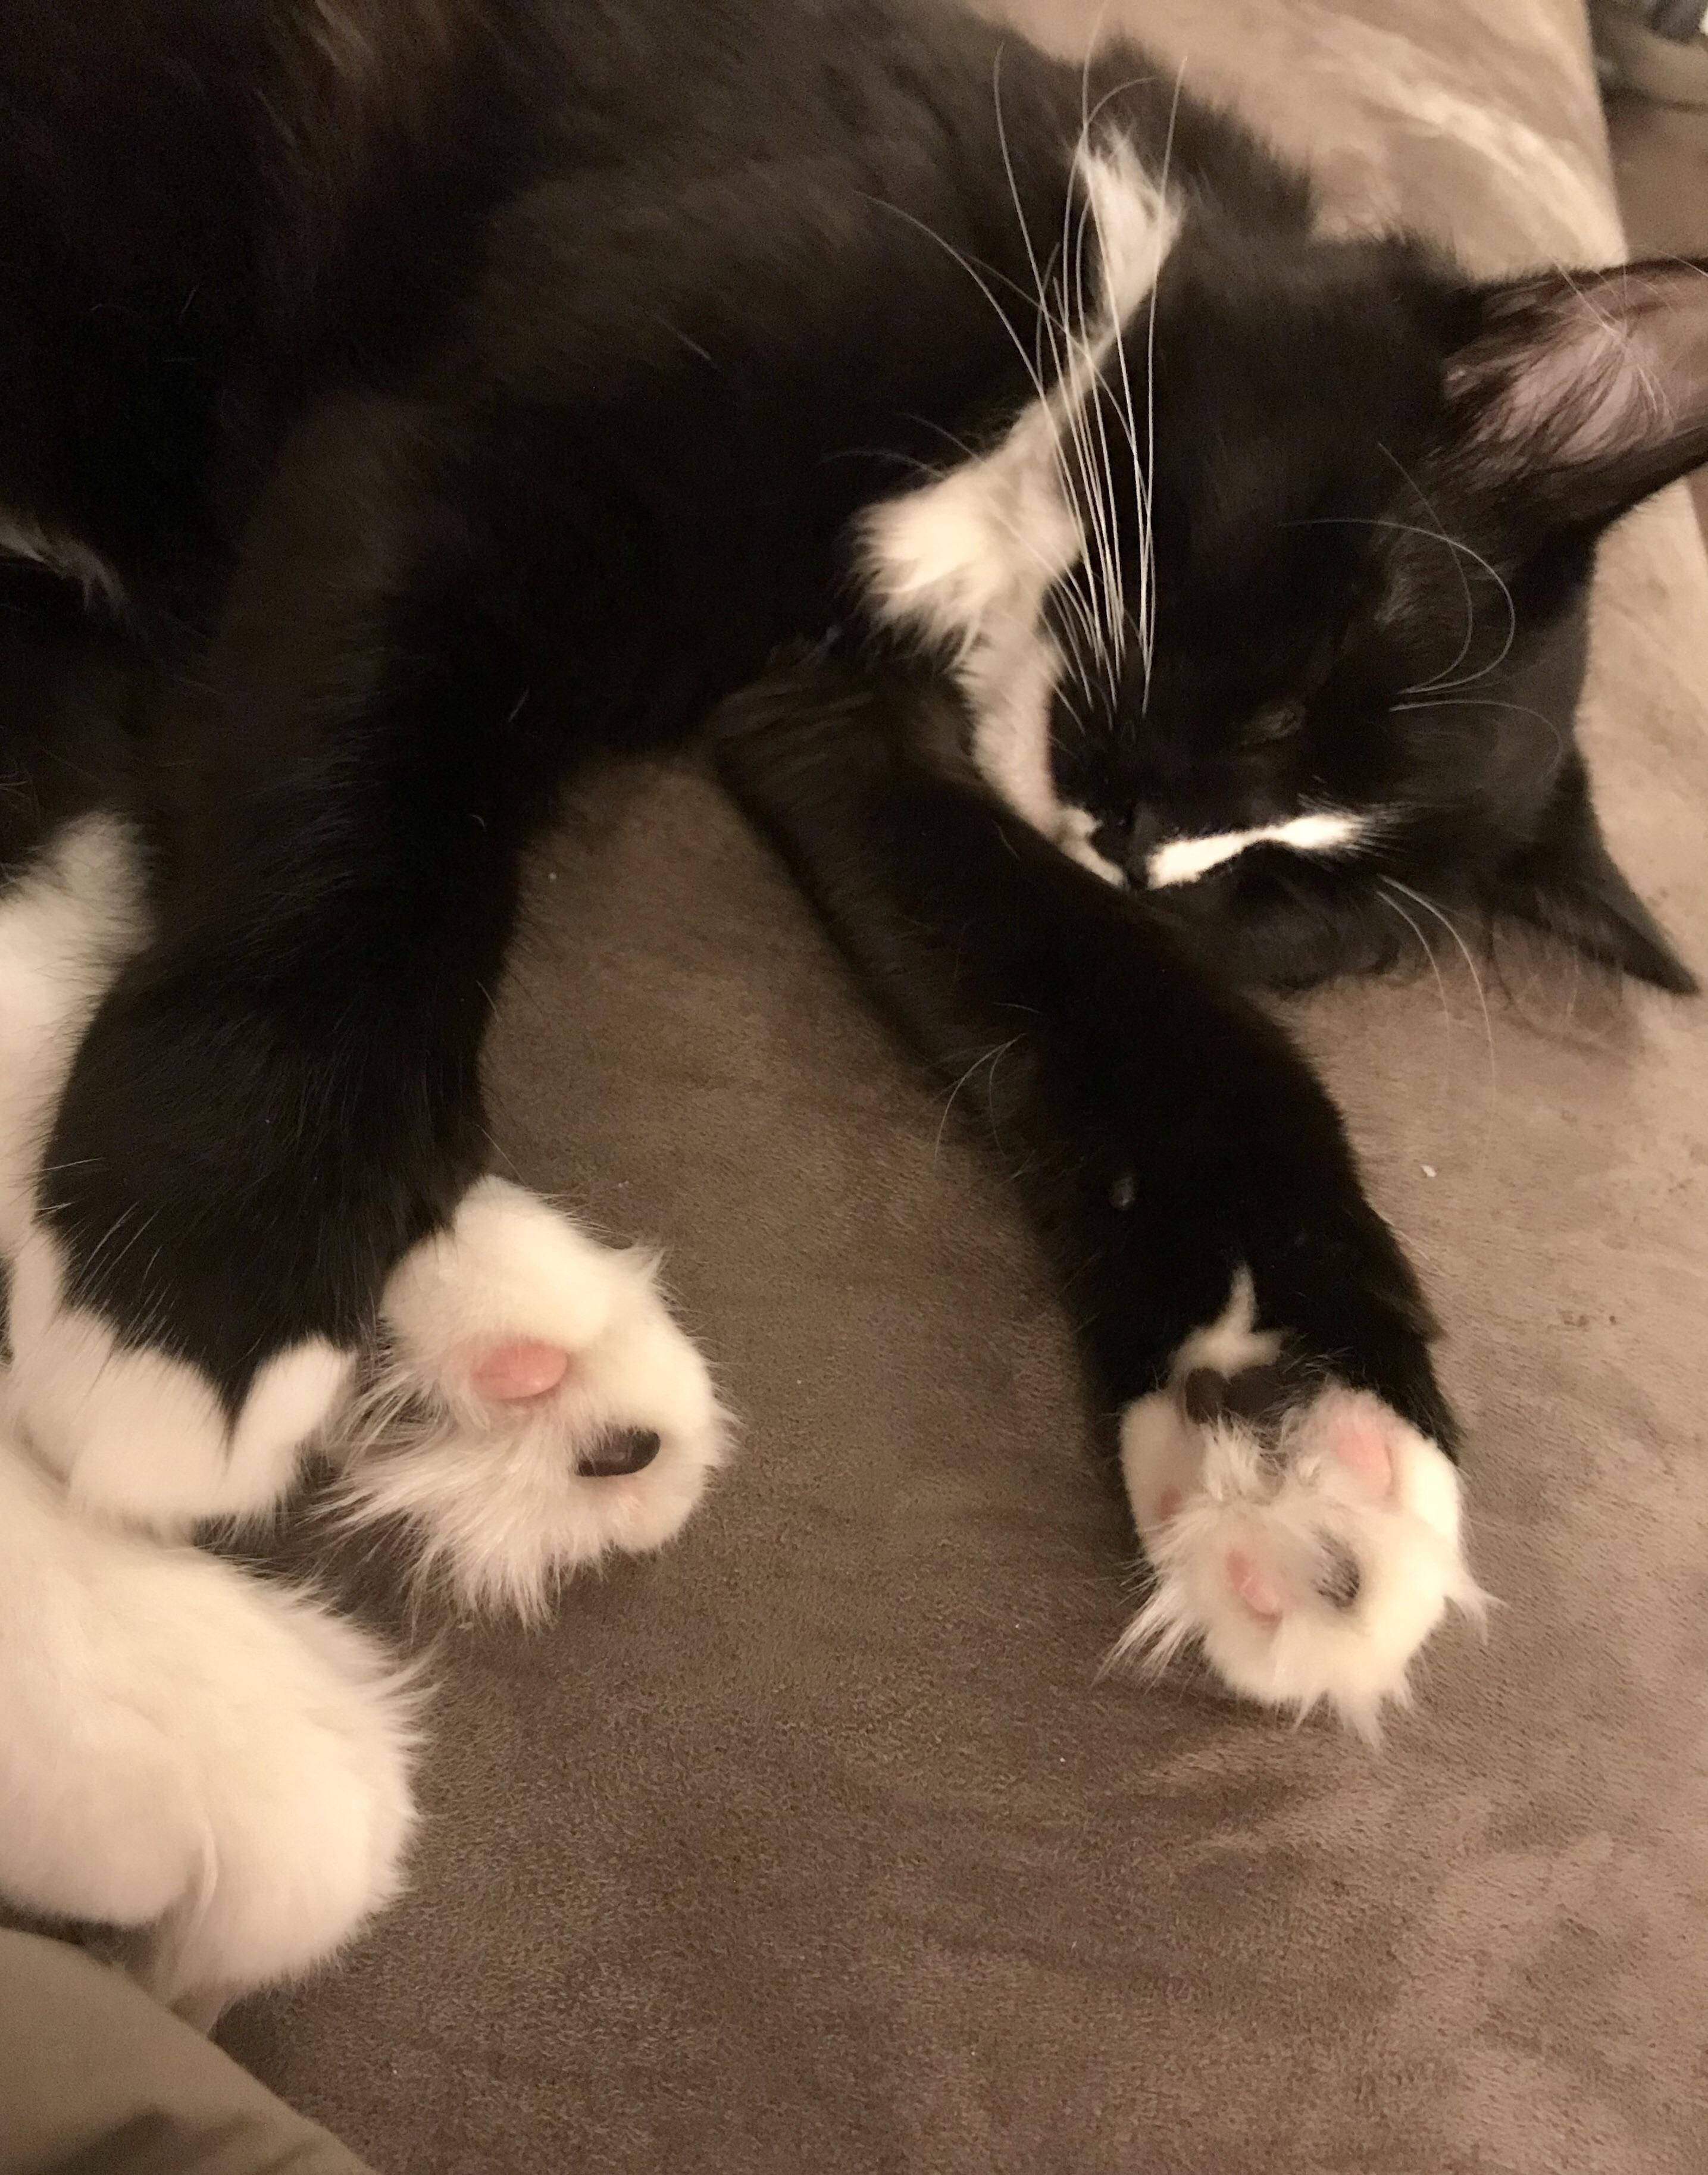 Just Look At Those Fluffy Cat Feet Hello There Bright People Are You Catlover Or Have You Any Pretty Cats I Think You Love Fluffy Cat Bicolor Cat Cats